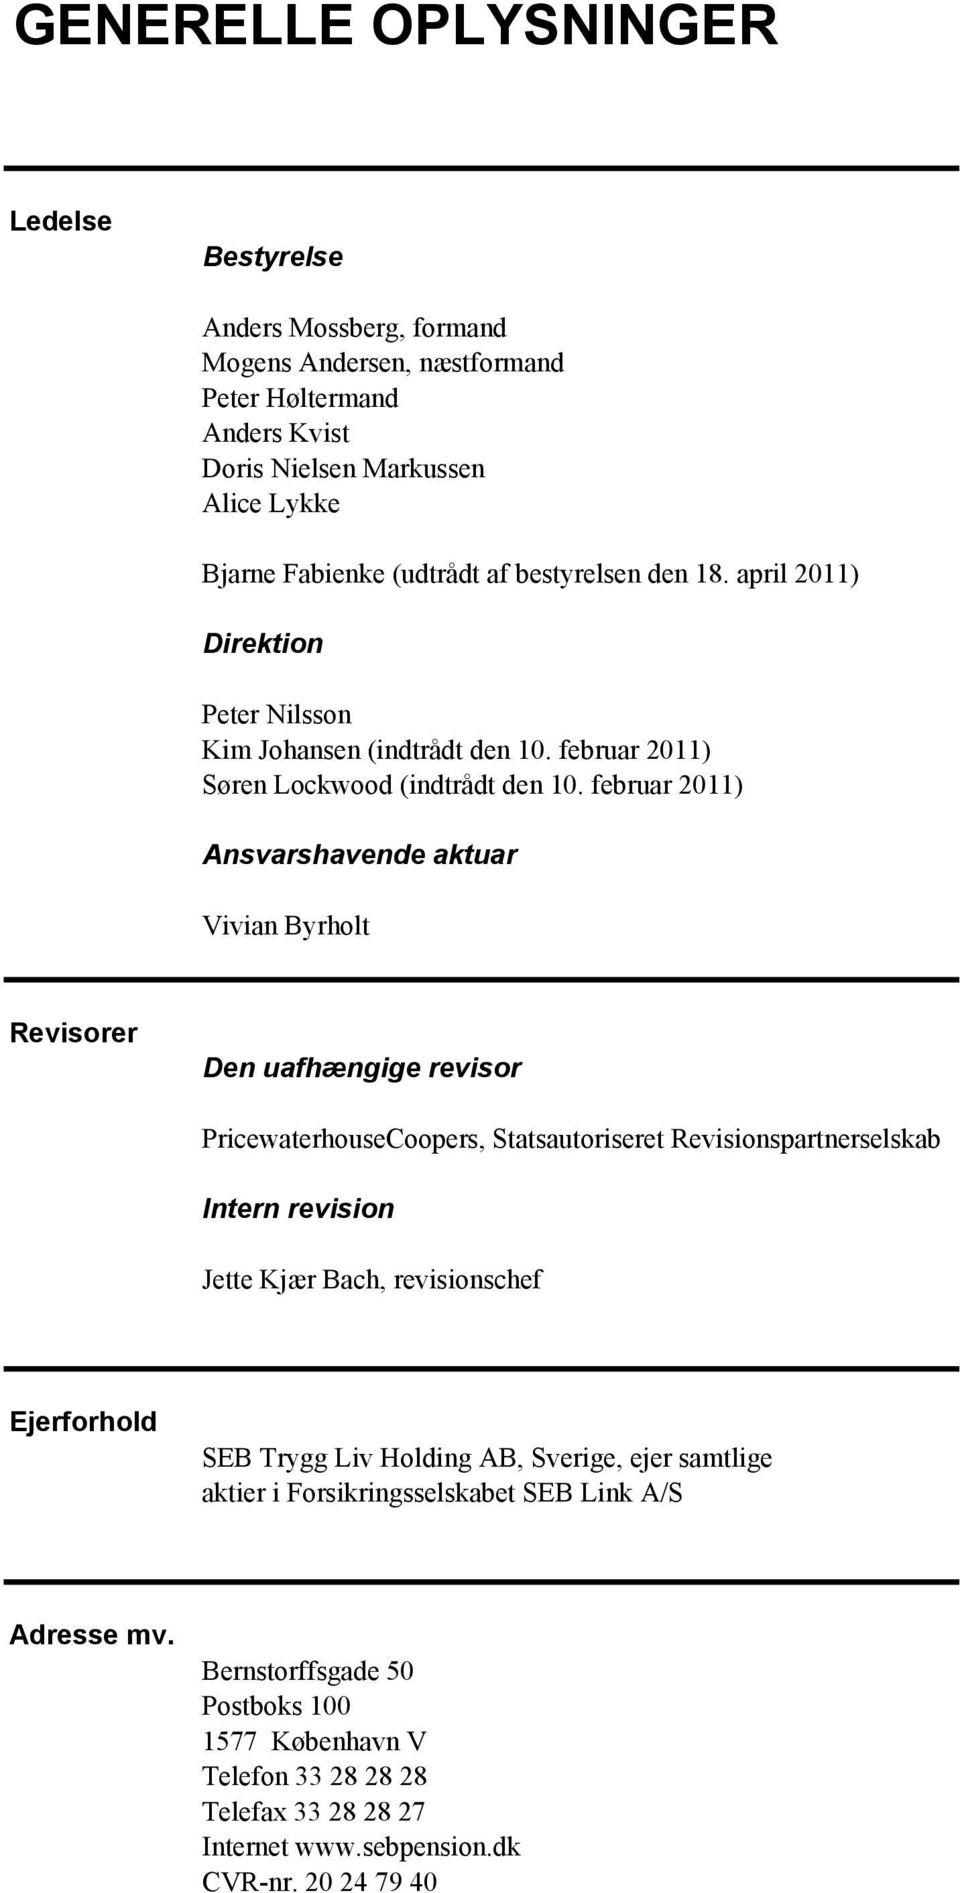 februar 2011) Ansvarshavende aktuar Vivian Byrholt Revisorer Den uafhængige revisor PricewaterhouseCoopers, Statsautoriseret Revisionspartnerselskab Intern revision Jette Kjær Bach,